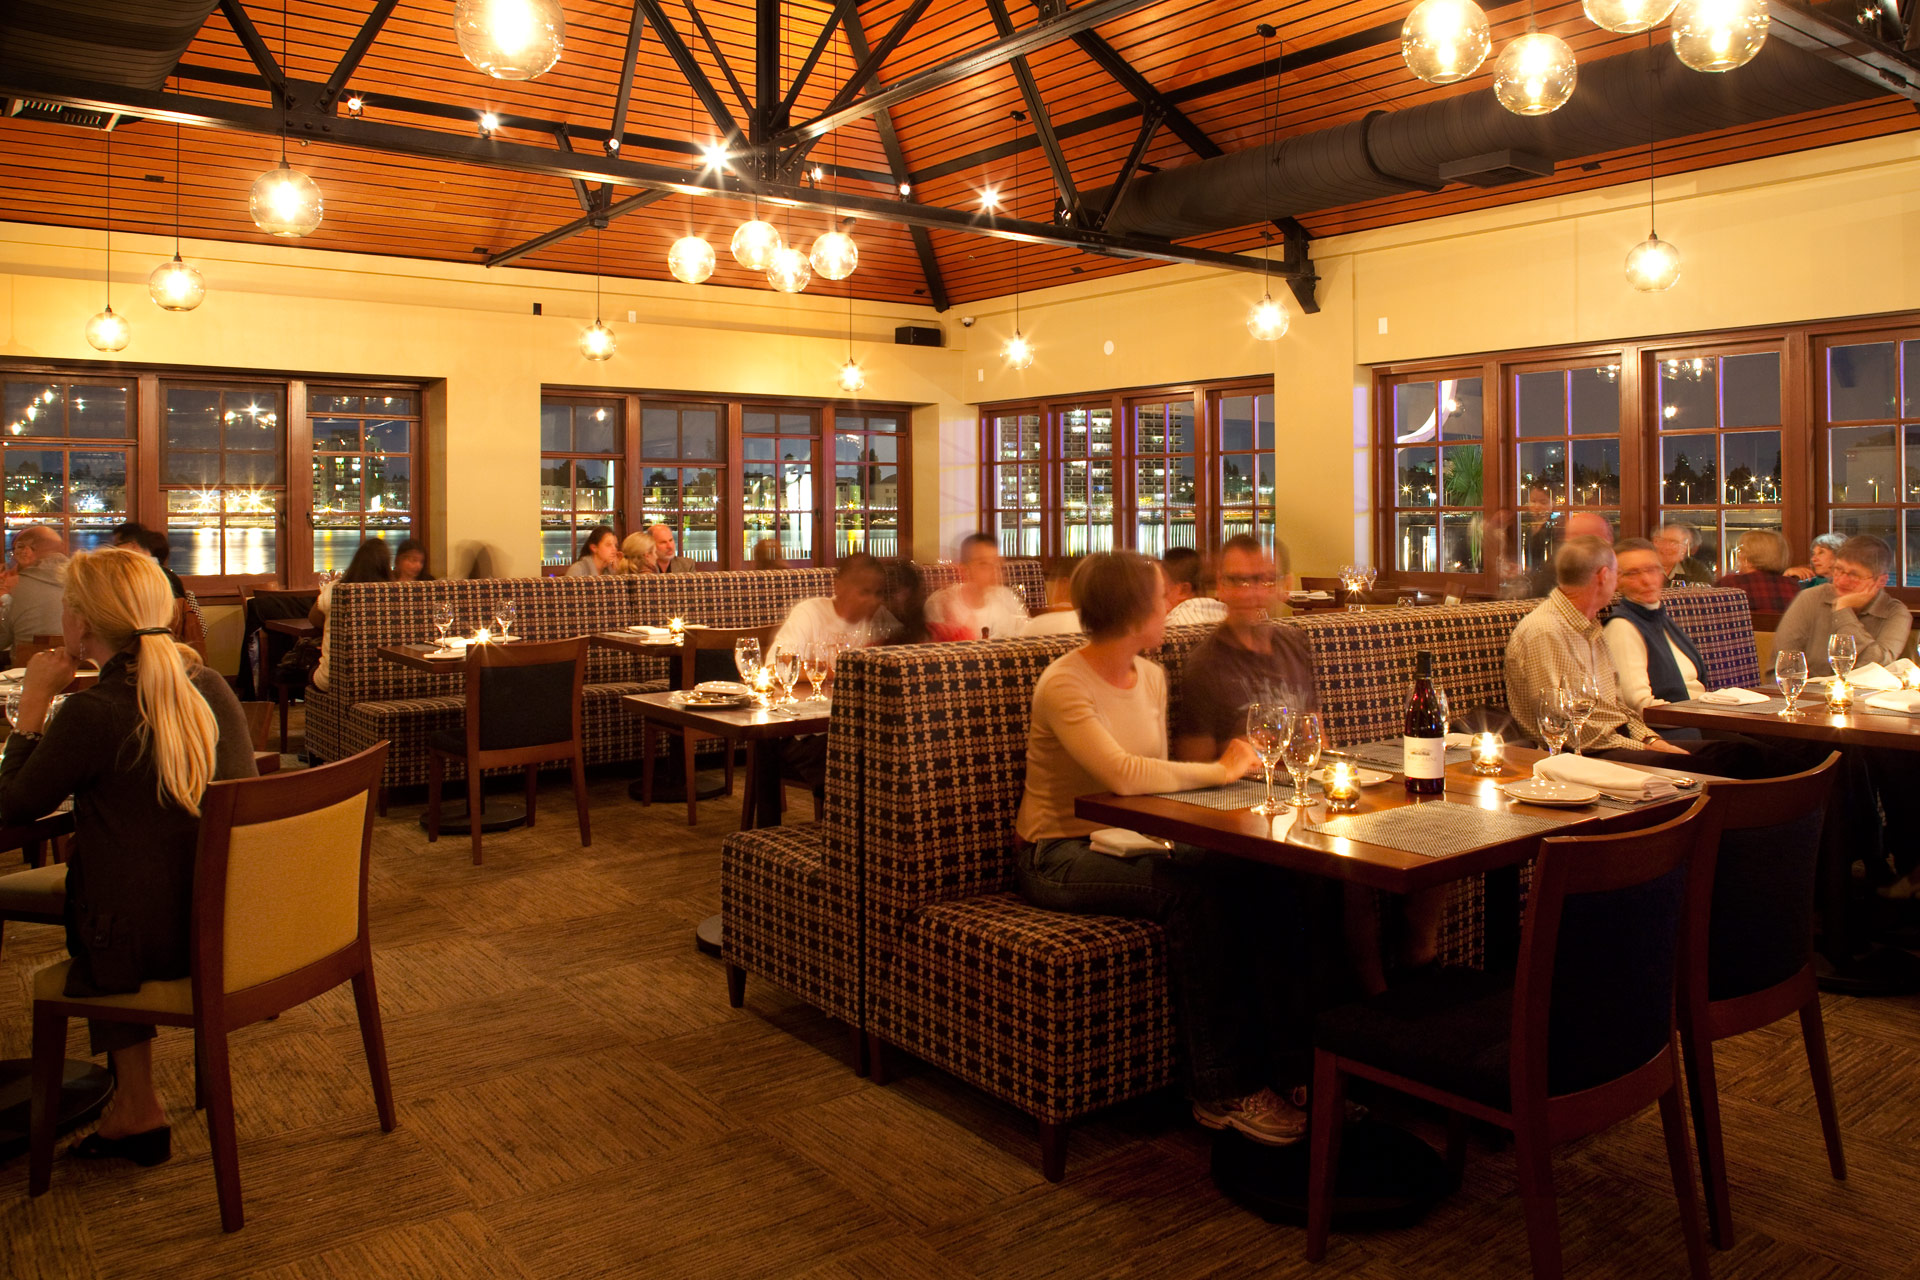 Lake Chalet restaurant design ideas